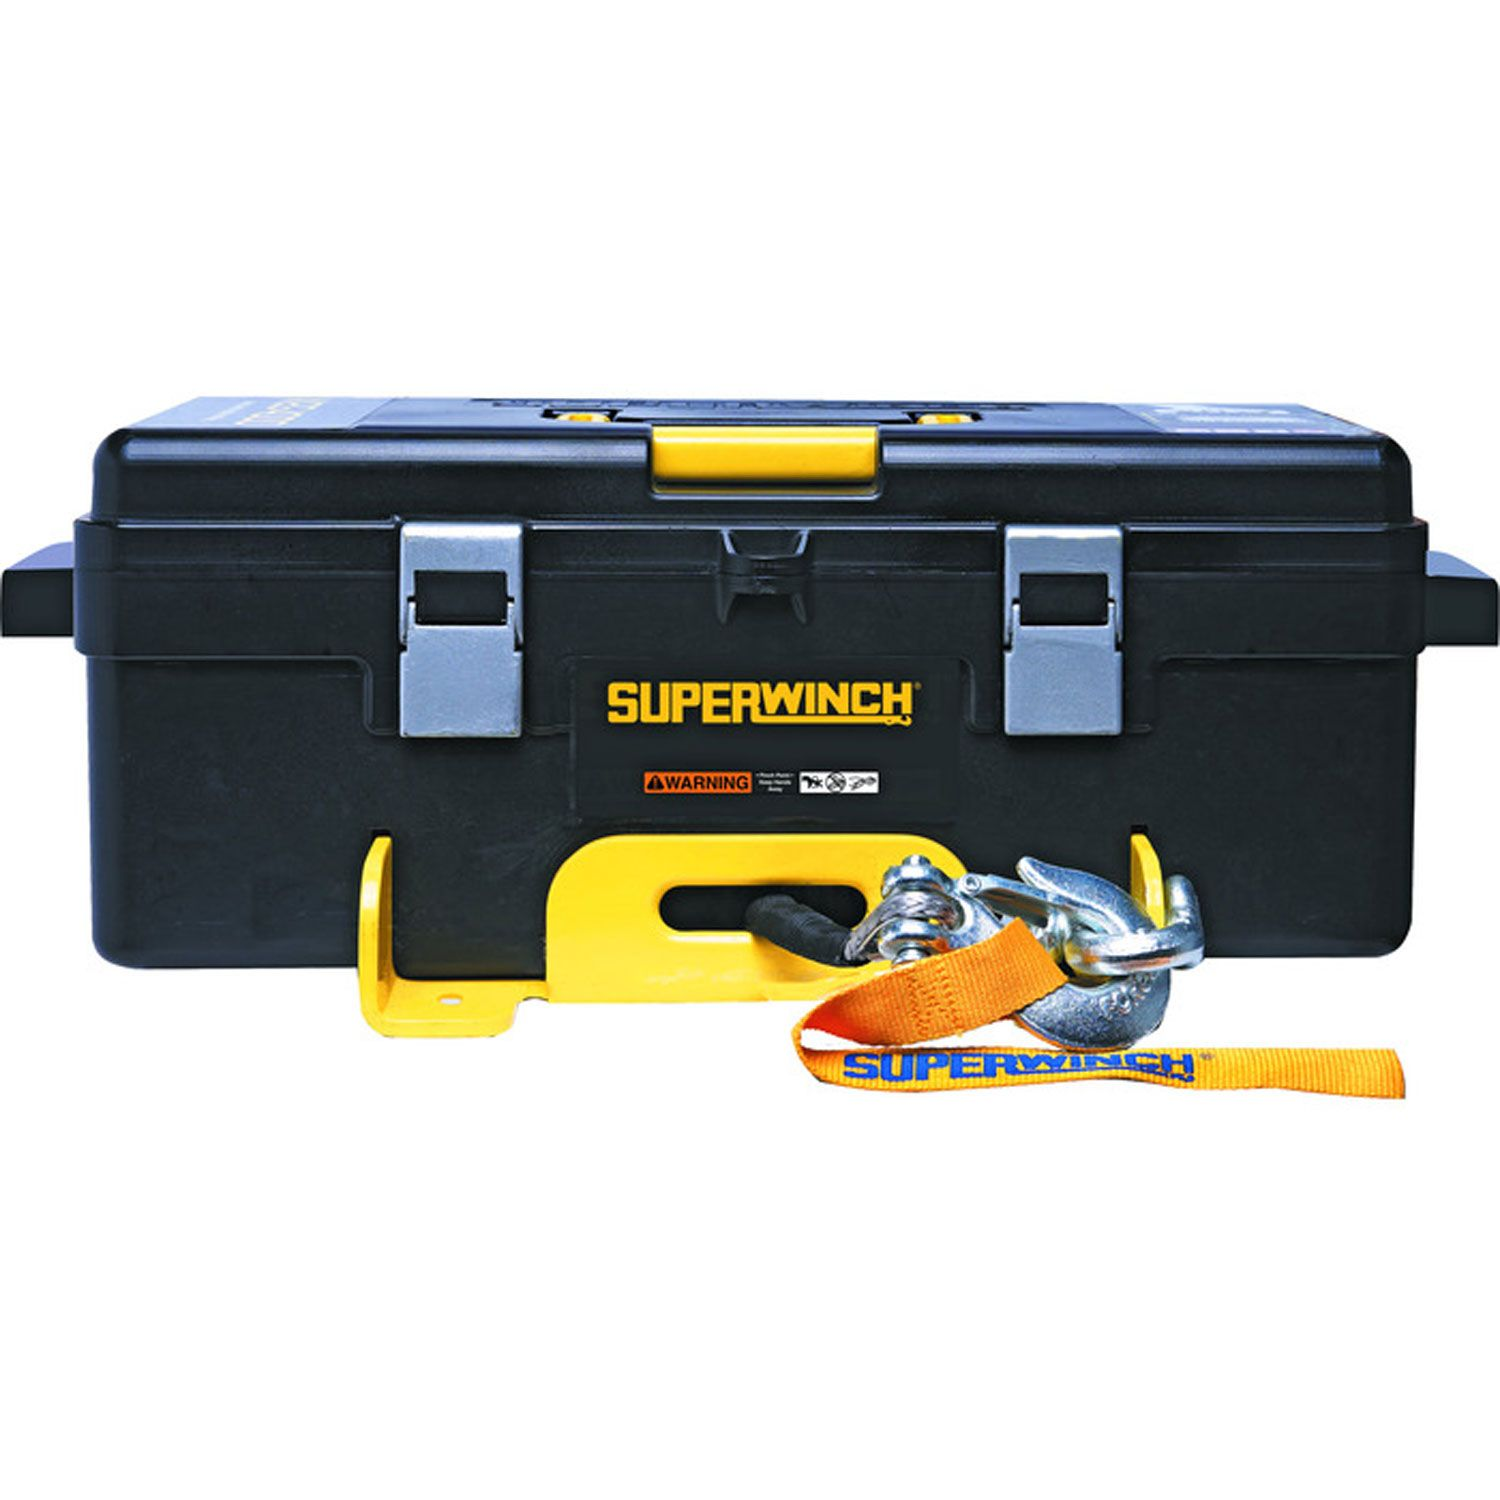 Superwinch Winch2Go Portable Winch 4000 lbs weight